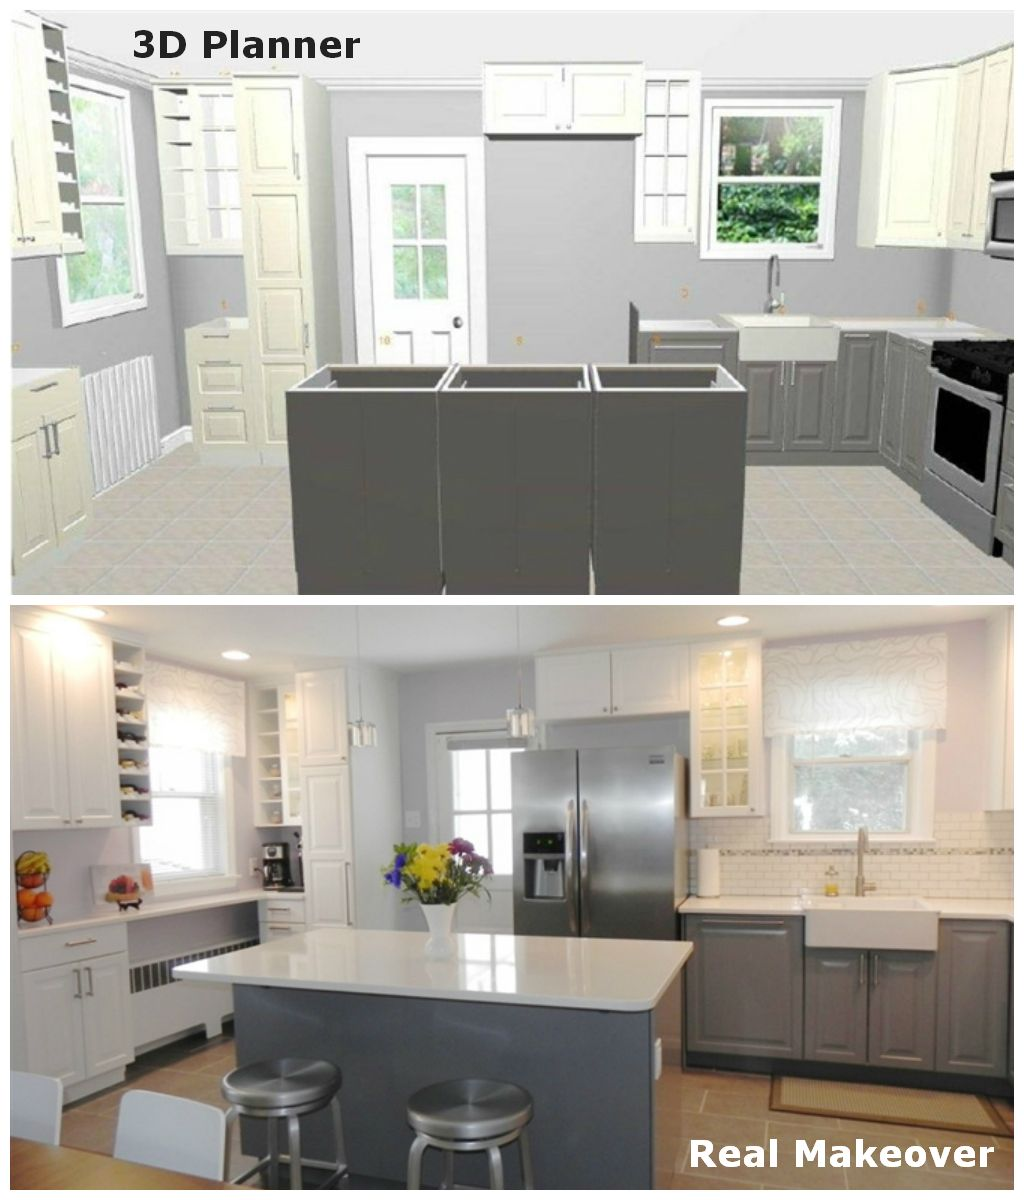 my real dream kitchen before after reality check planners and 3d. Black Bedroom Furniture Sets. Home Design Ideas